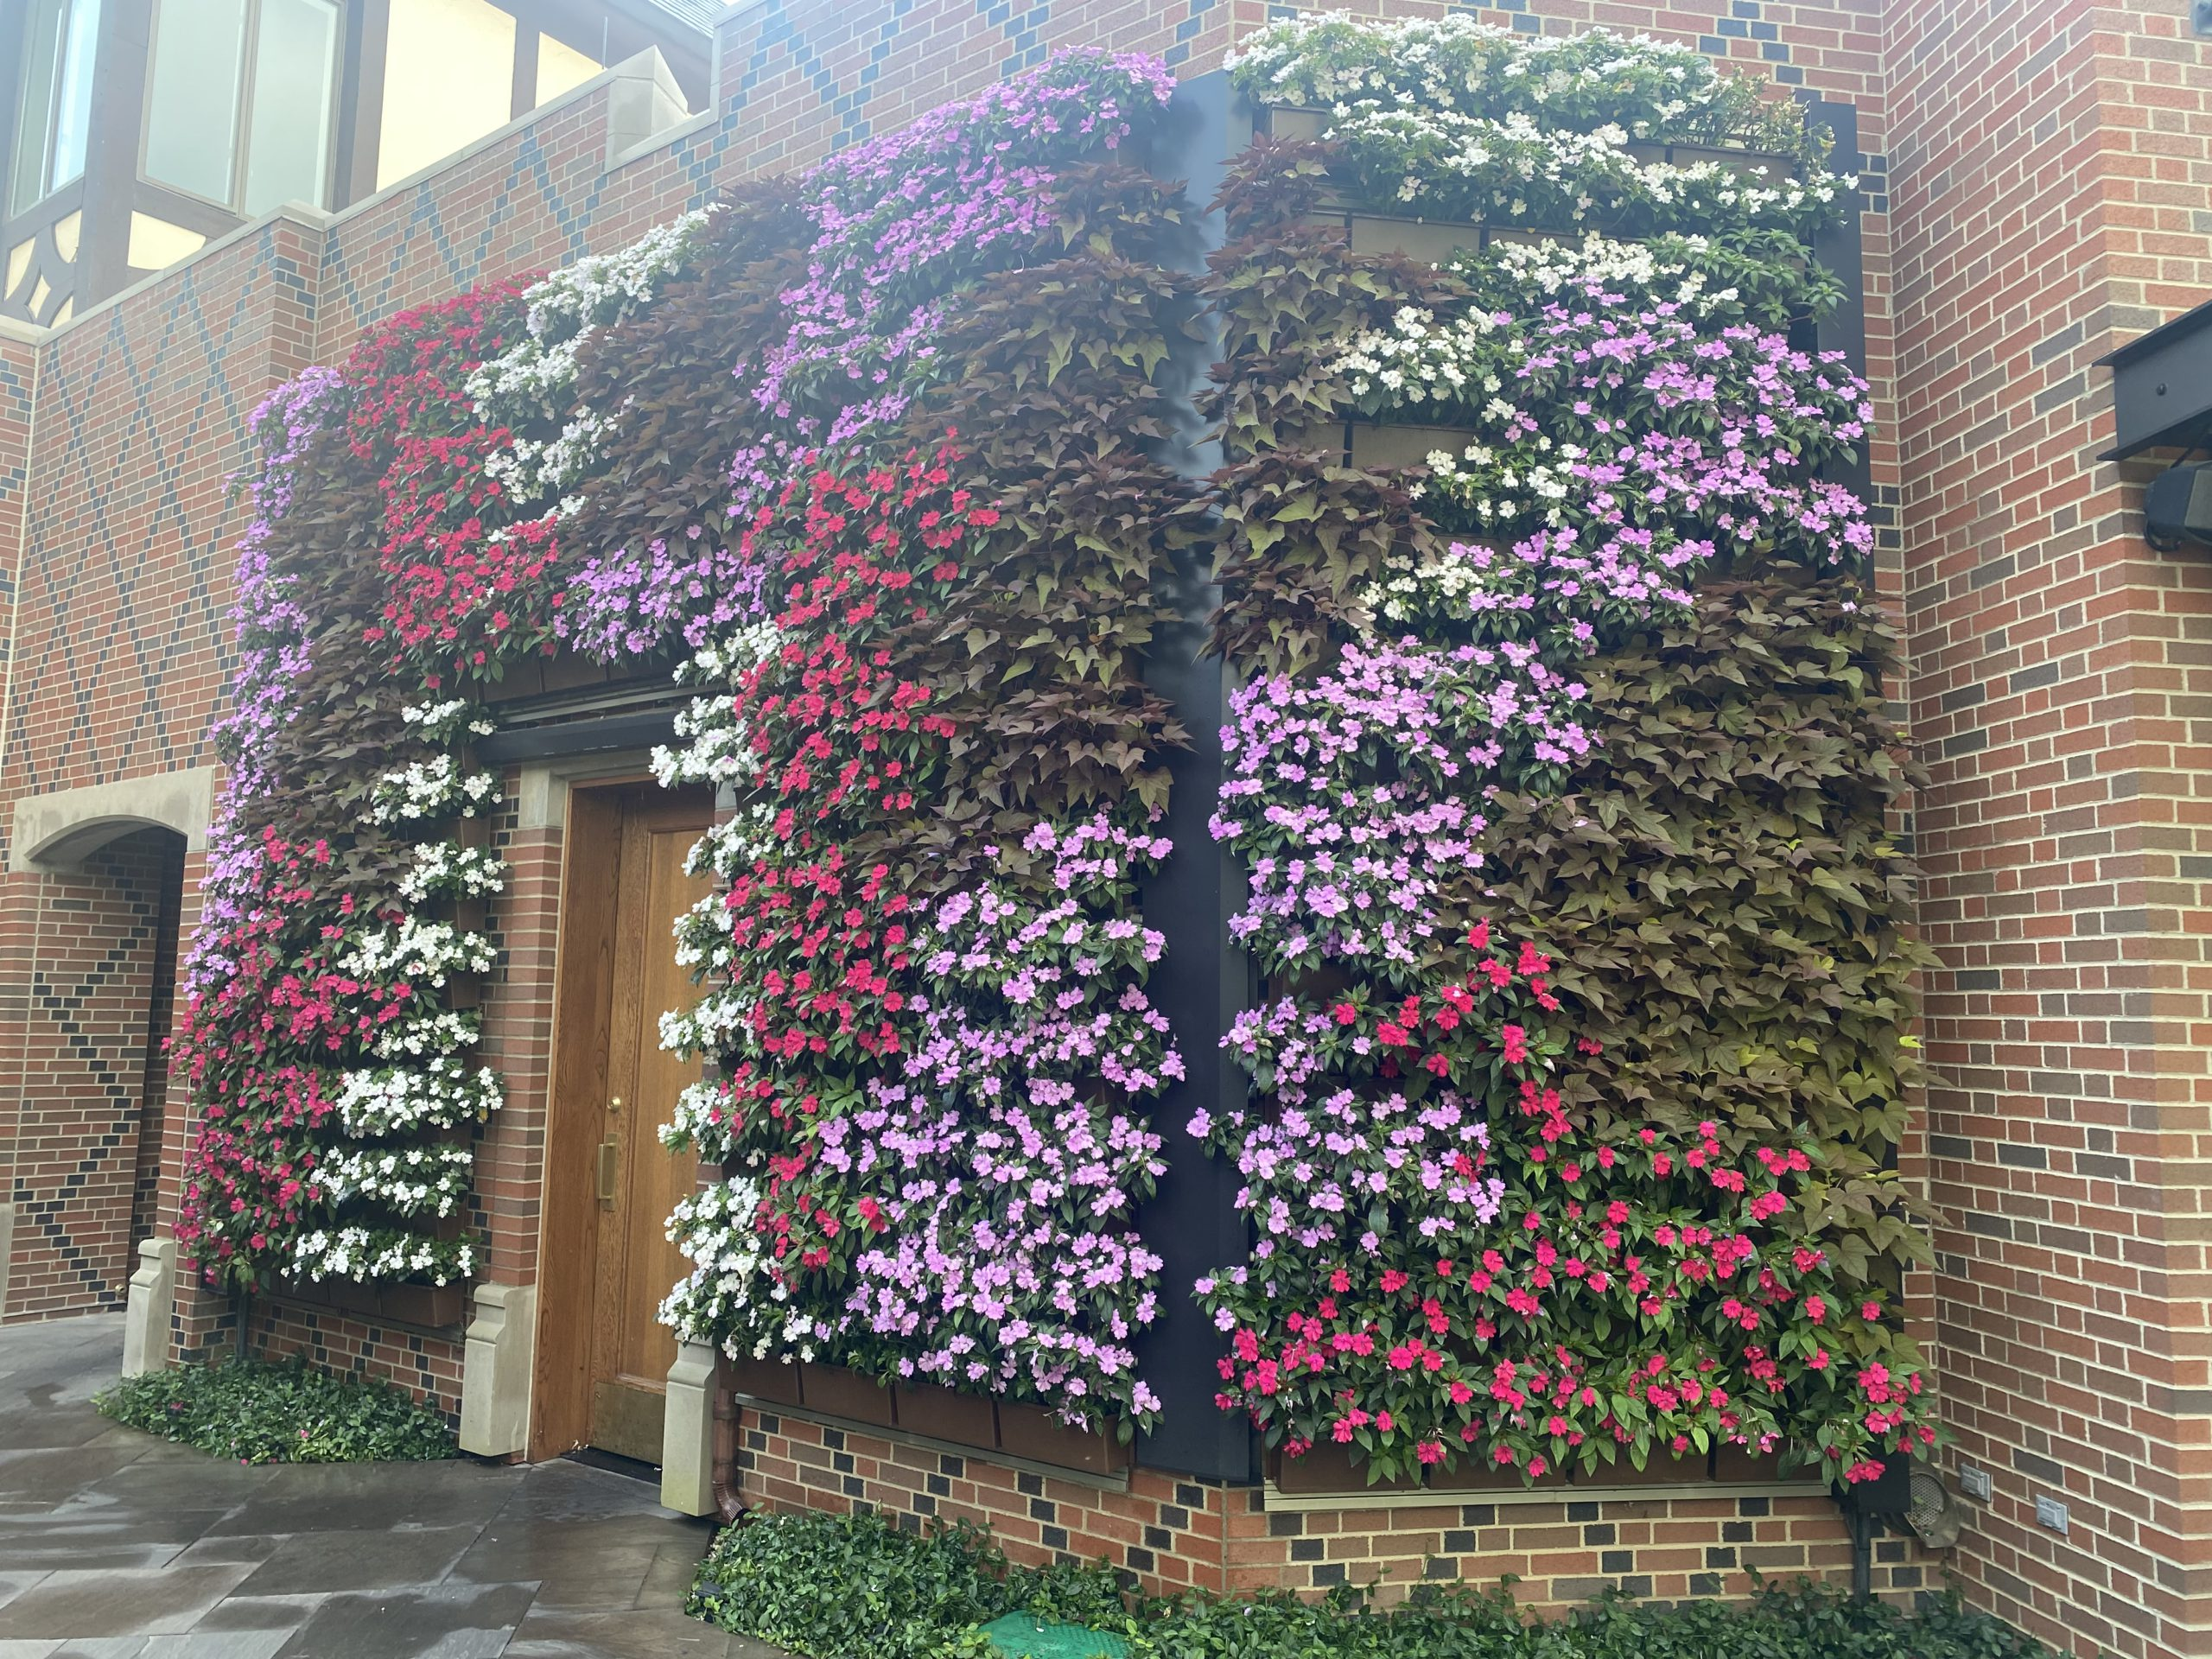 Colorful annuals pop against a brick exterior in this Michigan country club's LiveWall